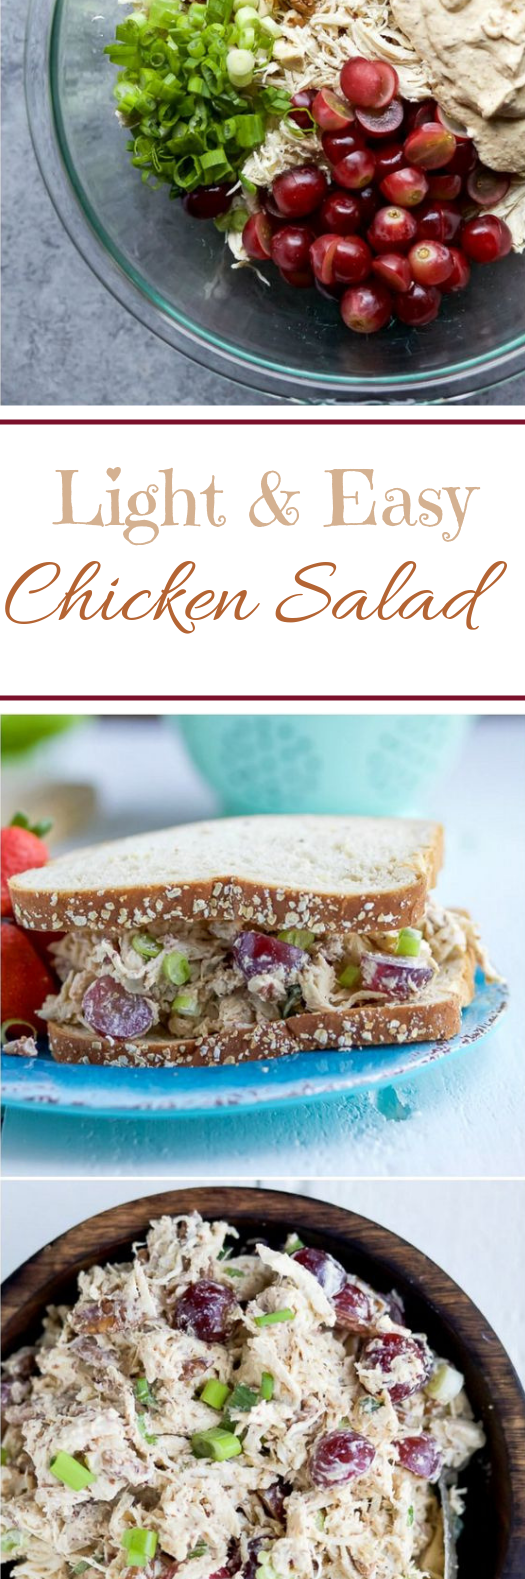 Light Chicken Salad #healthy #lunch